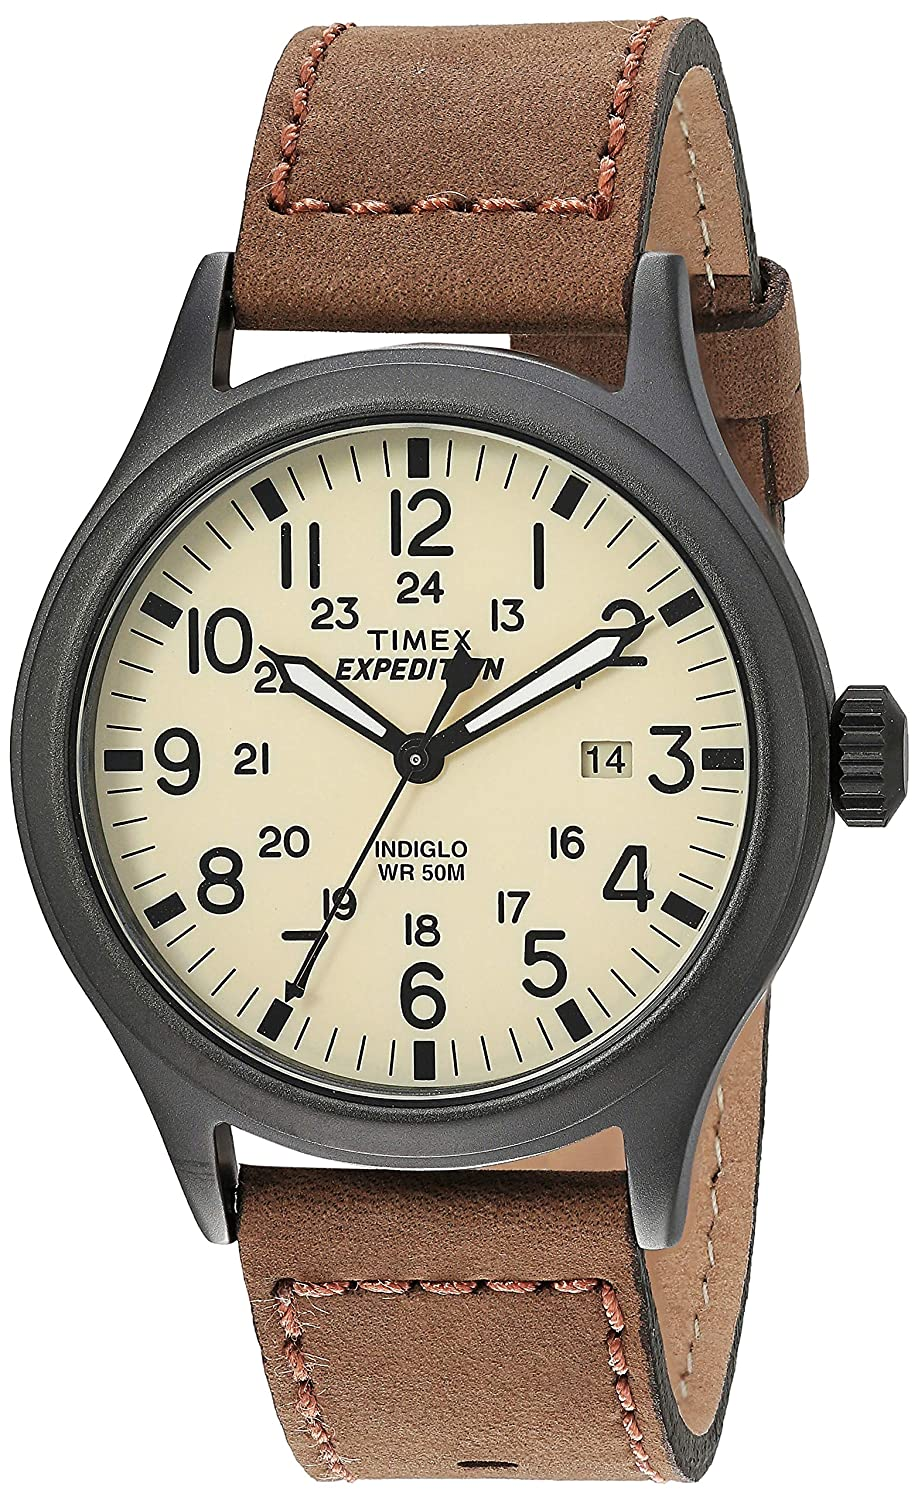 902e5ccbdd03 Amazon.com  Timex Men s T49963 Expedition Scout Brown Leather Strap Watch   Timex  Watches